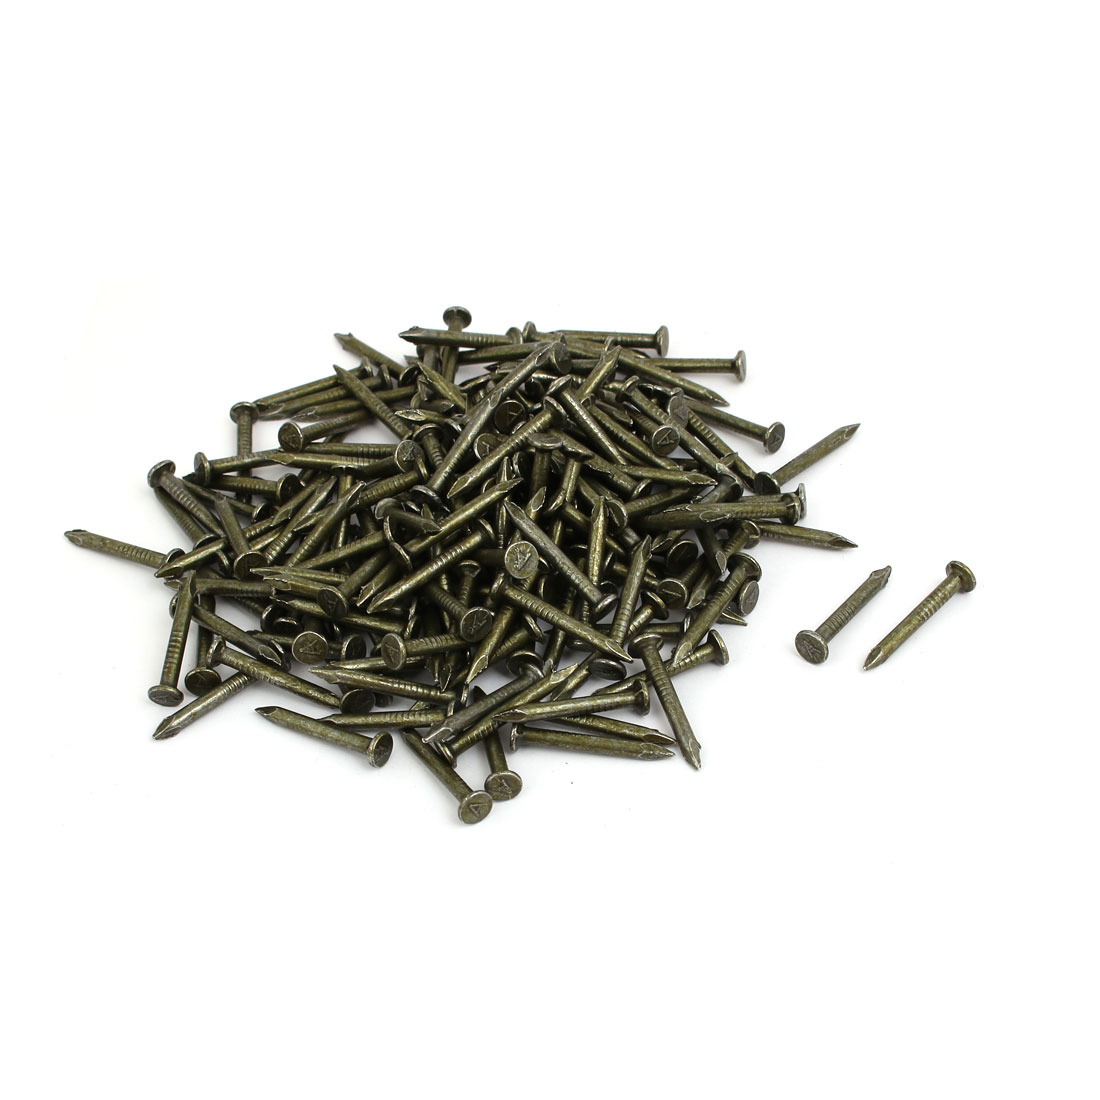 Fiber Concrete Cement Wall Carbon Steel Point Tip Wire Nails 2.8mmx25mm 300PCS - image 2 of 2